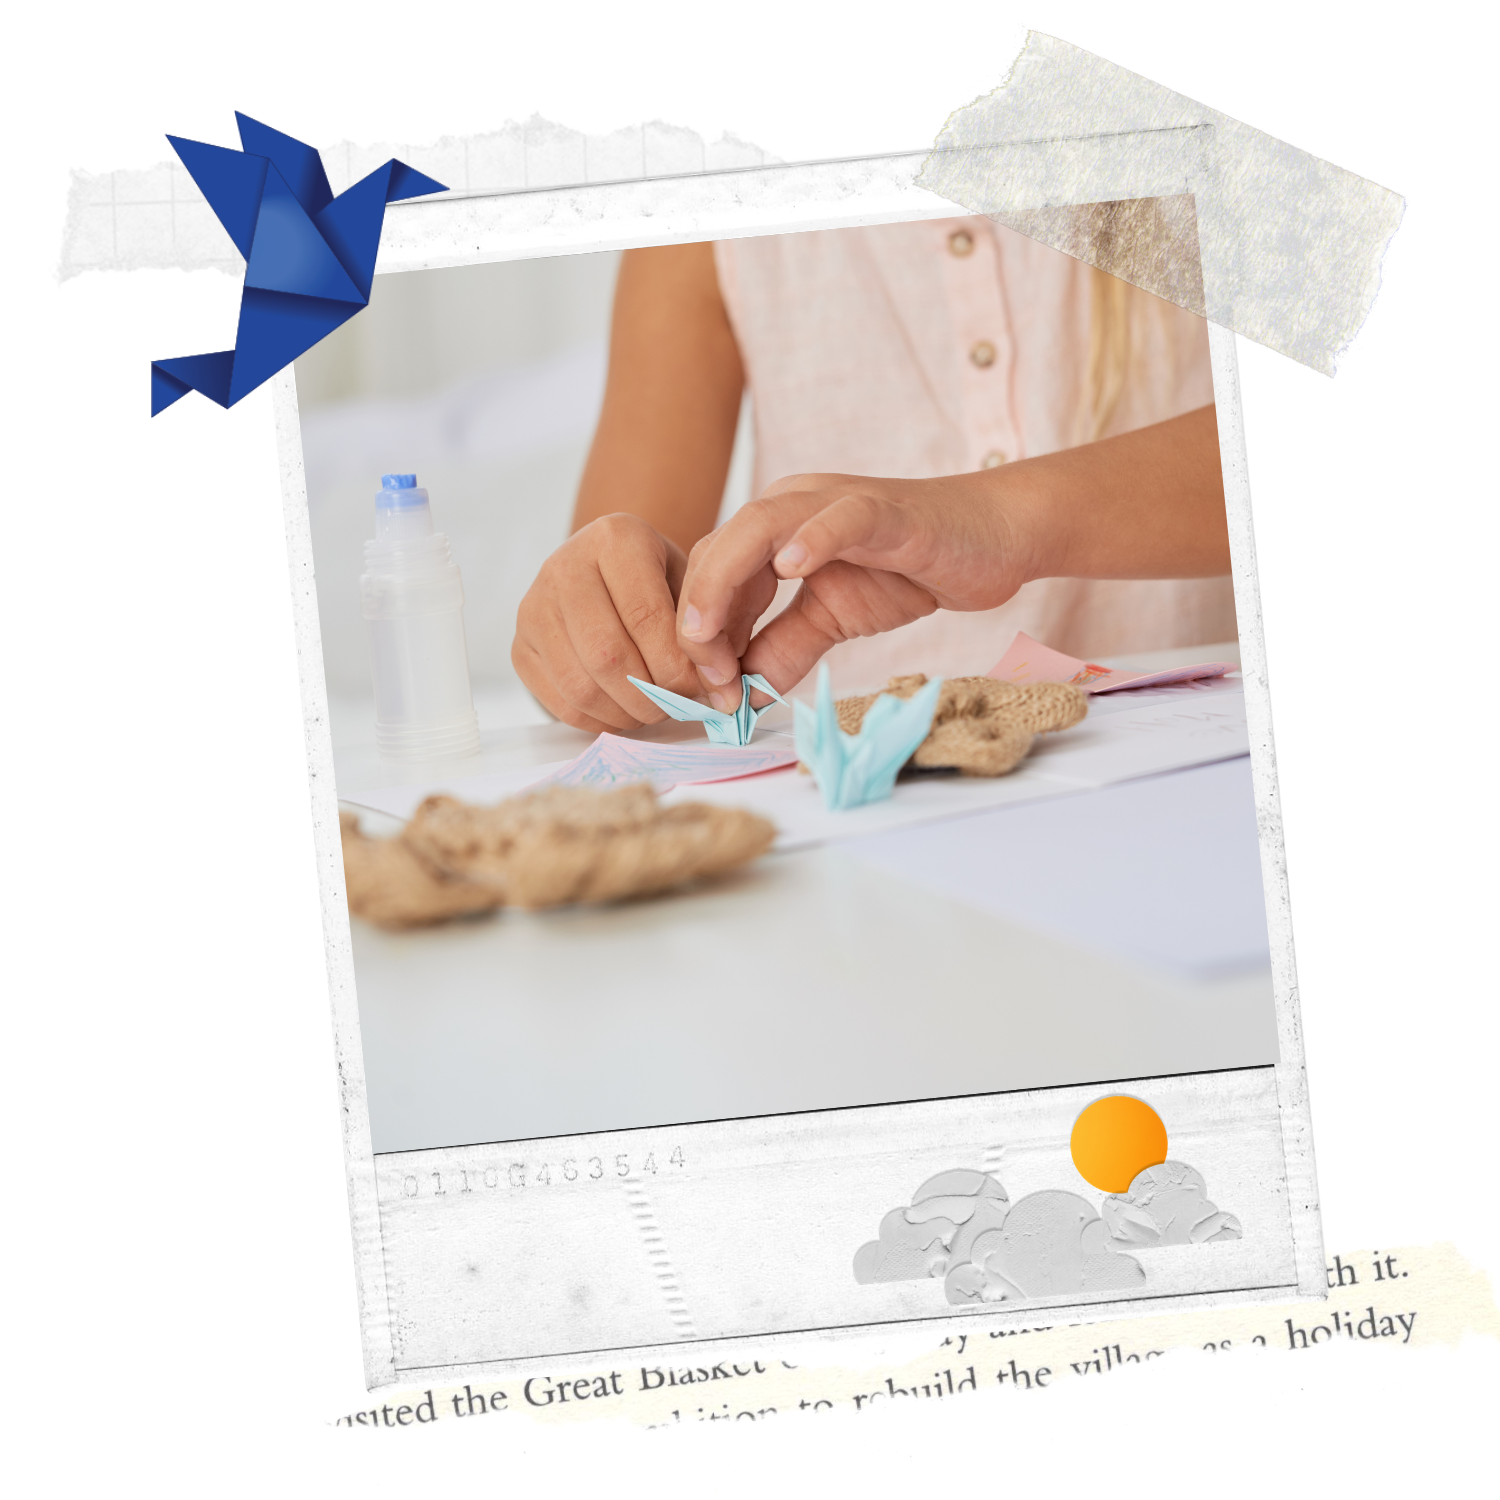 collage image of person's hands making a small, origami paper crane